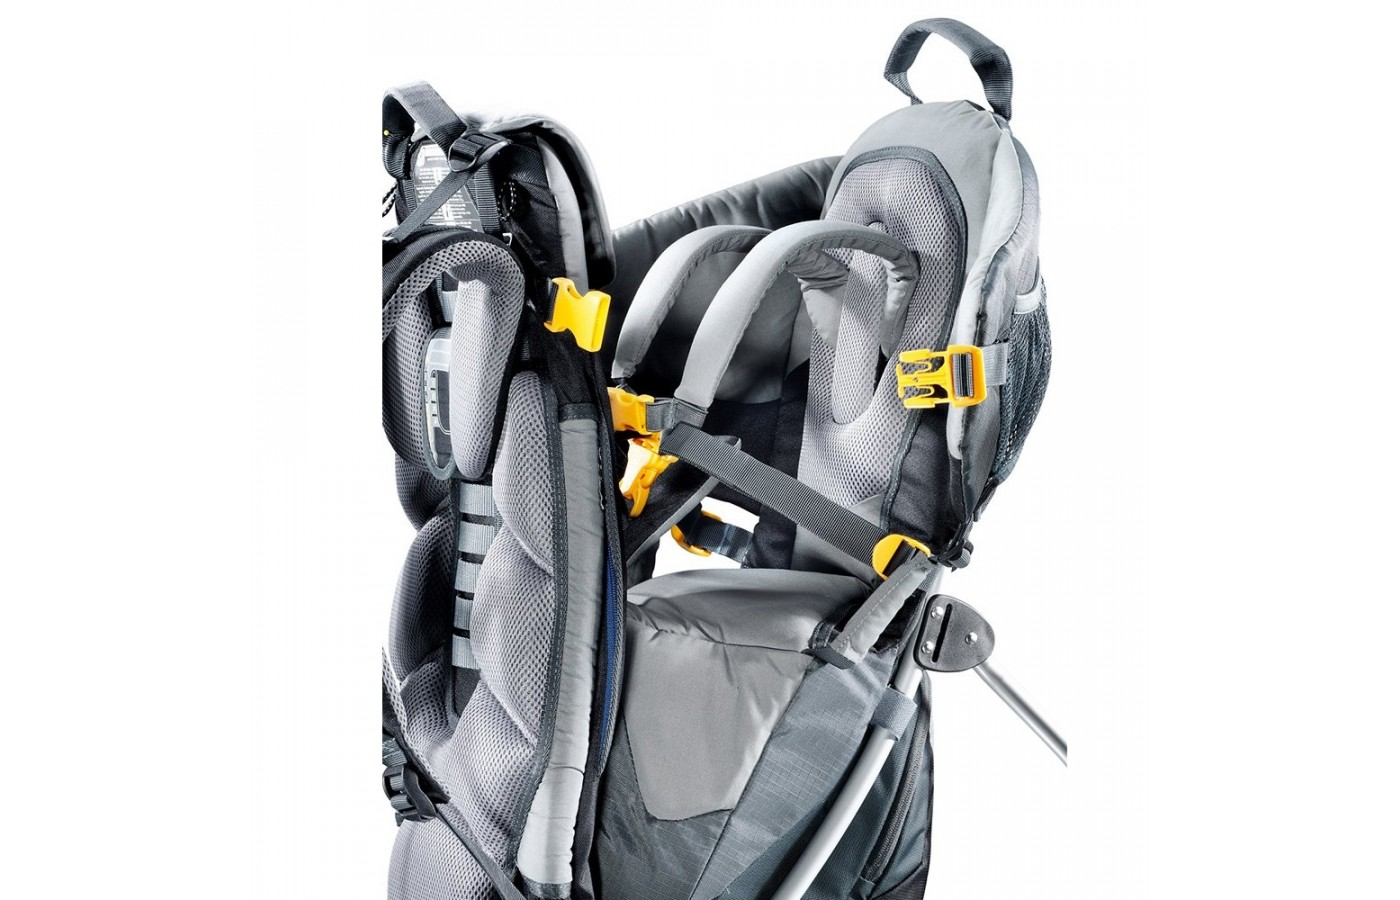 The Deuter Kid Comfort II offers safety straps to protect your little one when they are on your back.